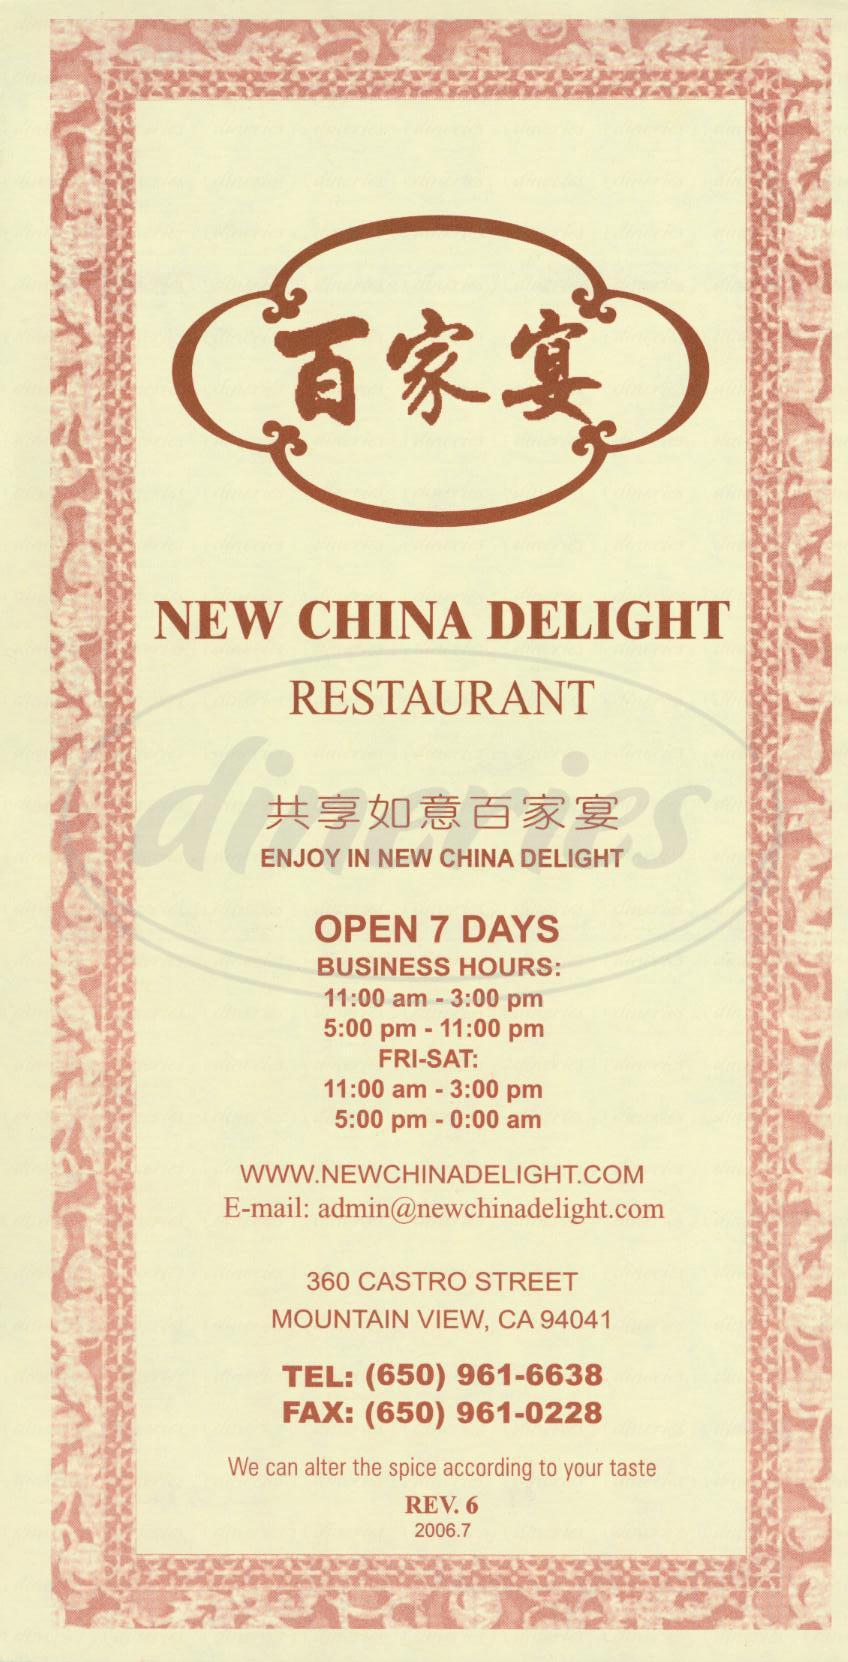 menu for New China Delight Restaurant